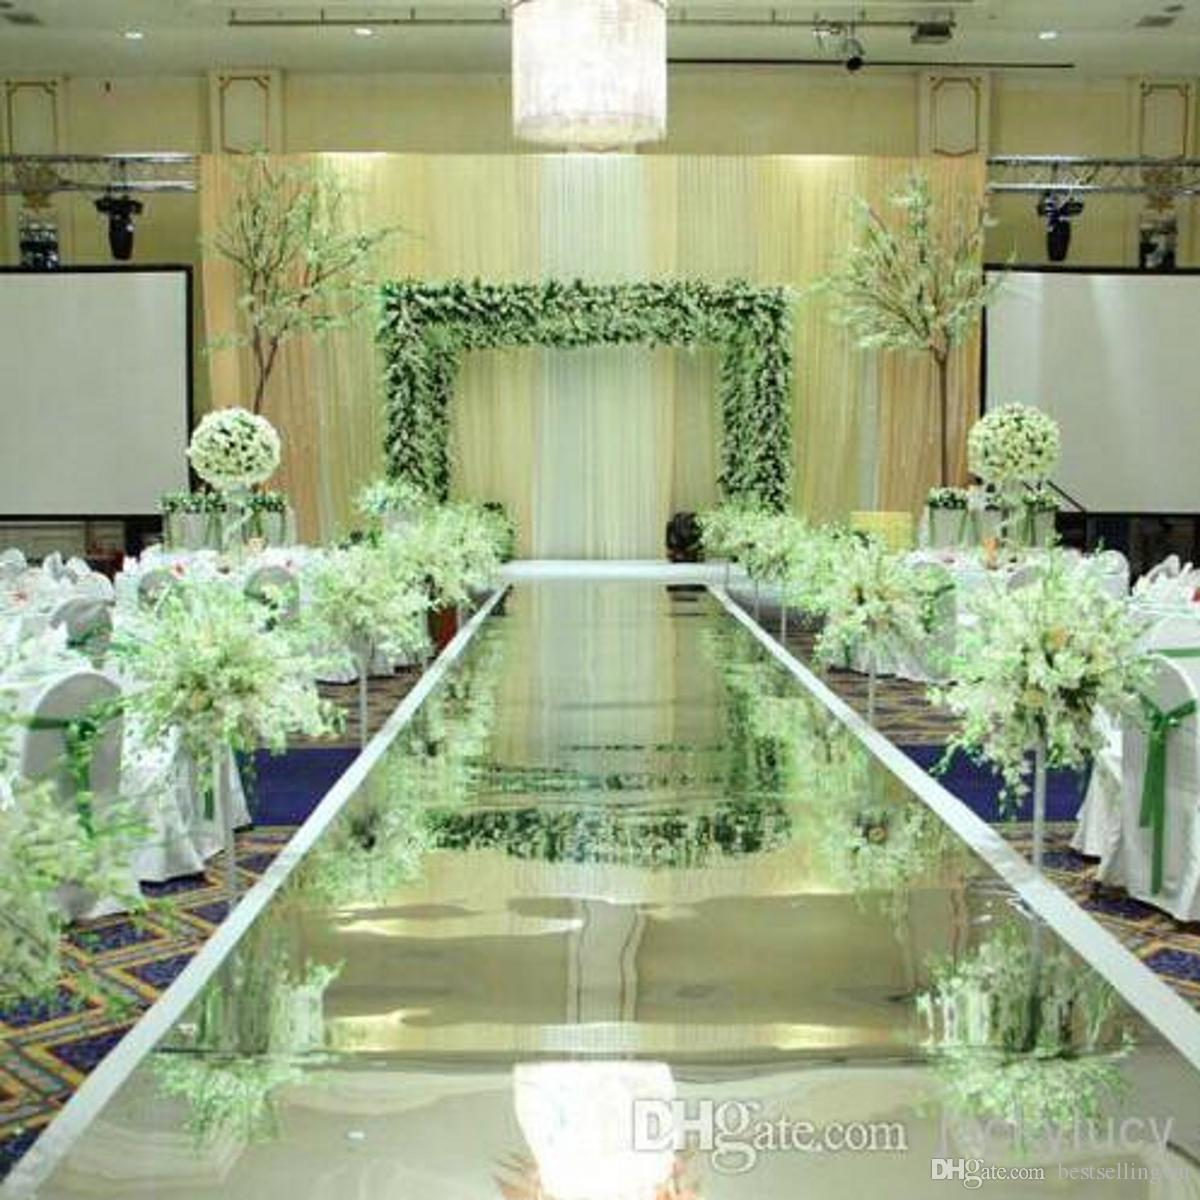 12 m wide luxury wedding centerpieces decor mirror carpet aisle 12 m wide luxury wedding centerpieces decor mirror carpet aisle runner for party backdrop decorations supplies 2015 new arrival mirror carpet wedding junglespirit Choice Image